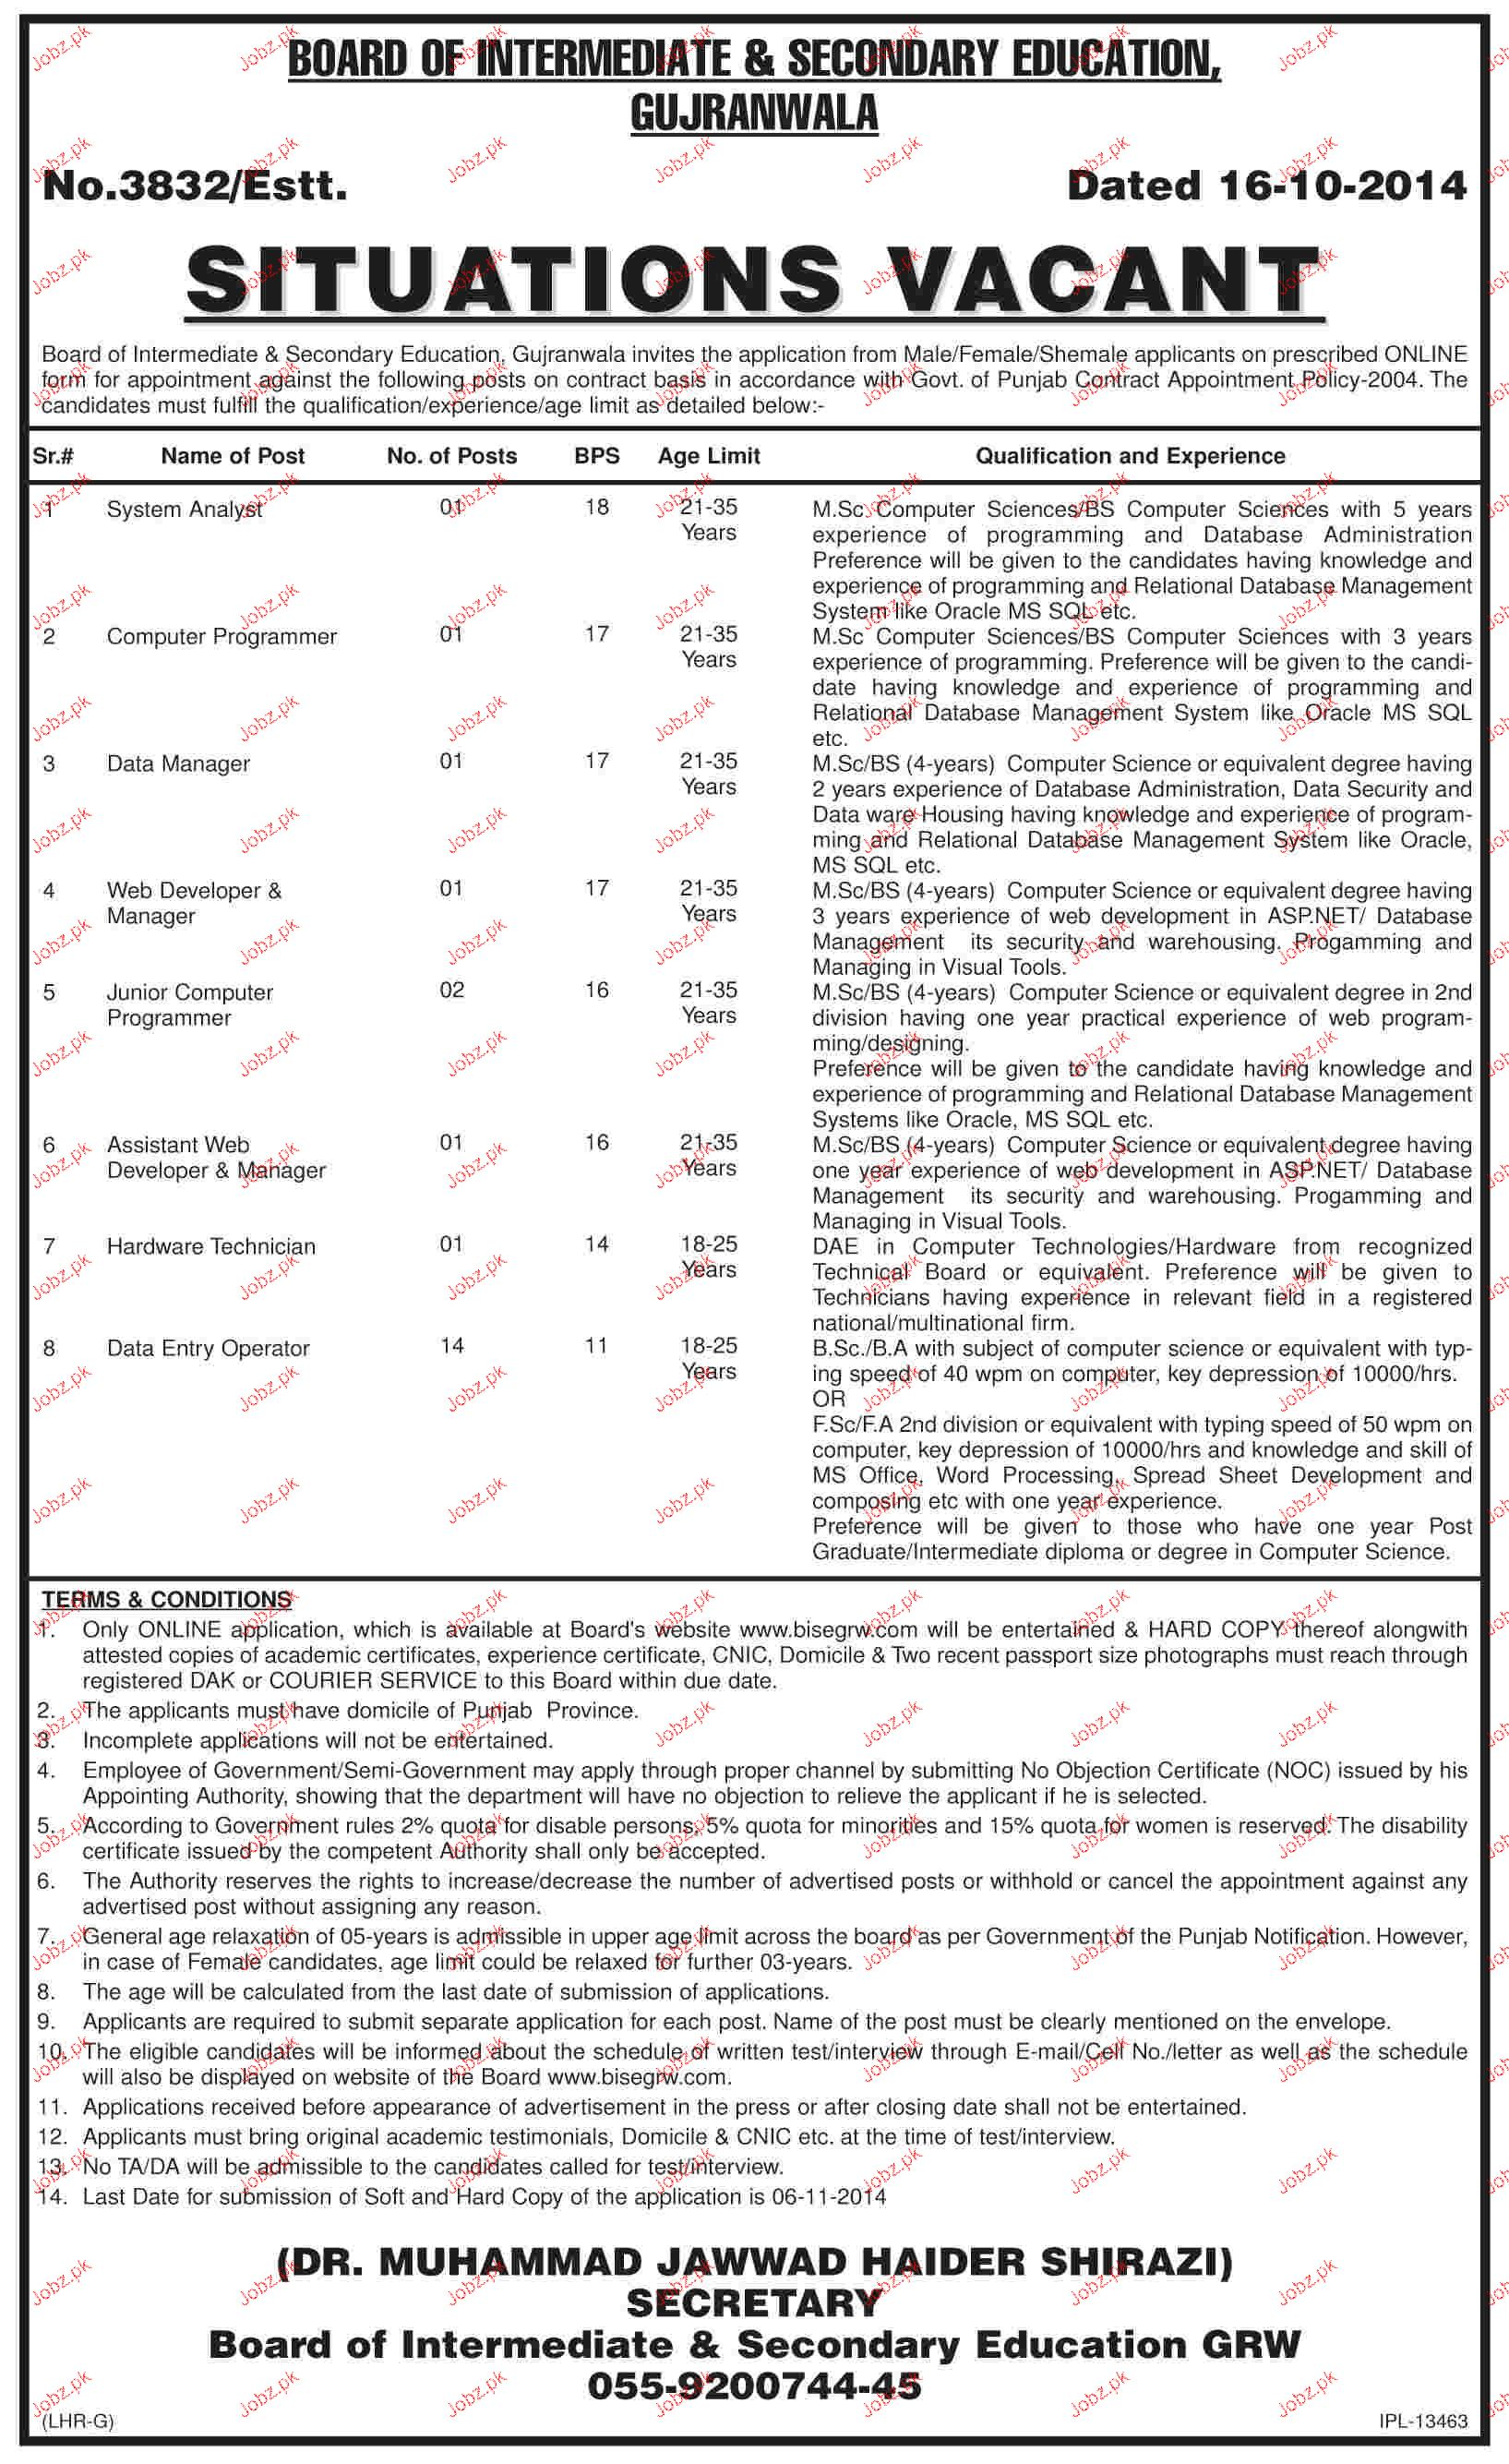 System Analyst Computer Programmers Job in BISE Gujranwala 2017 – Computer Programmer Job Description